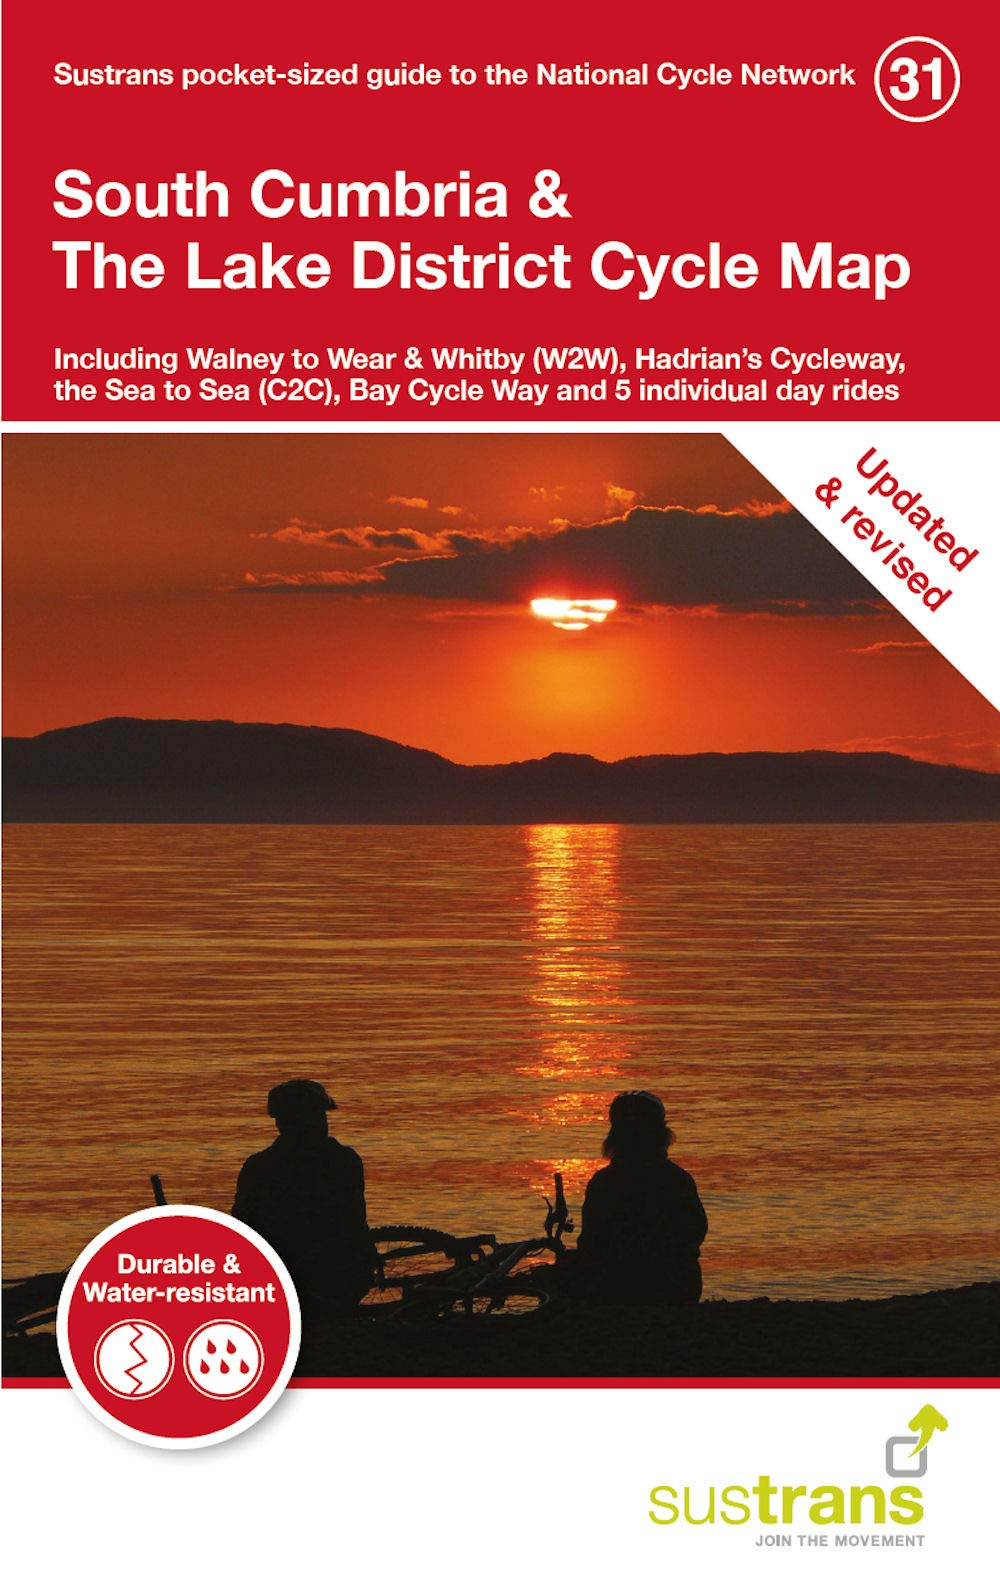 map of south lake district South Cumbria The Lake District Cycle Map Including Walney To map of south lake district